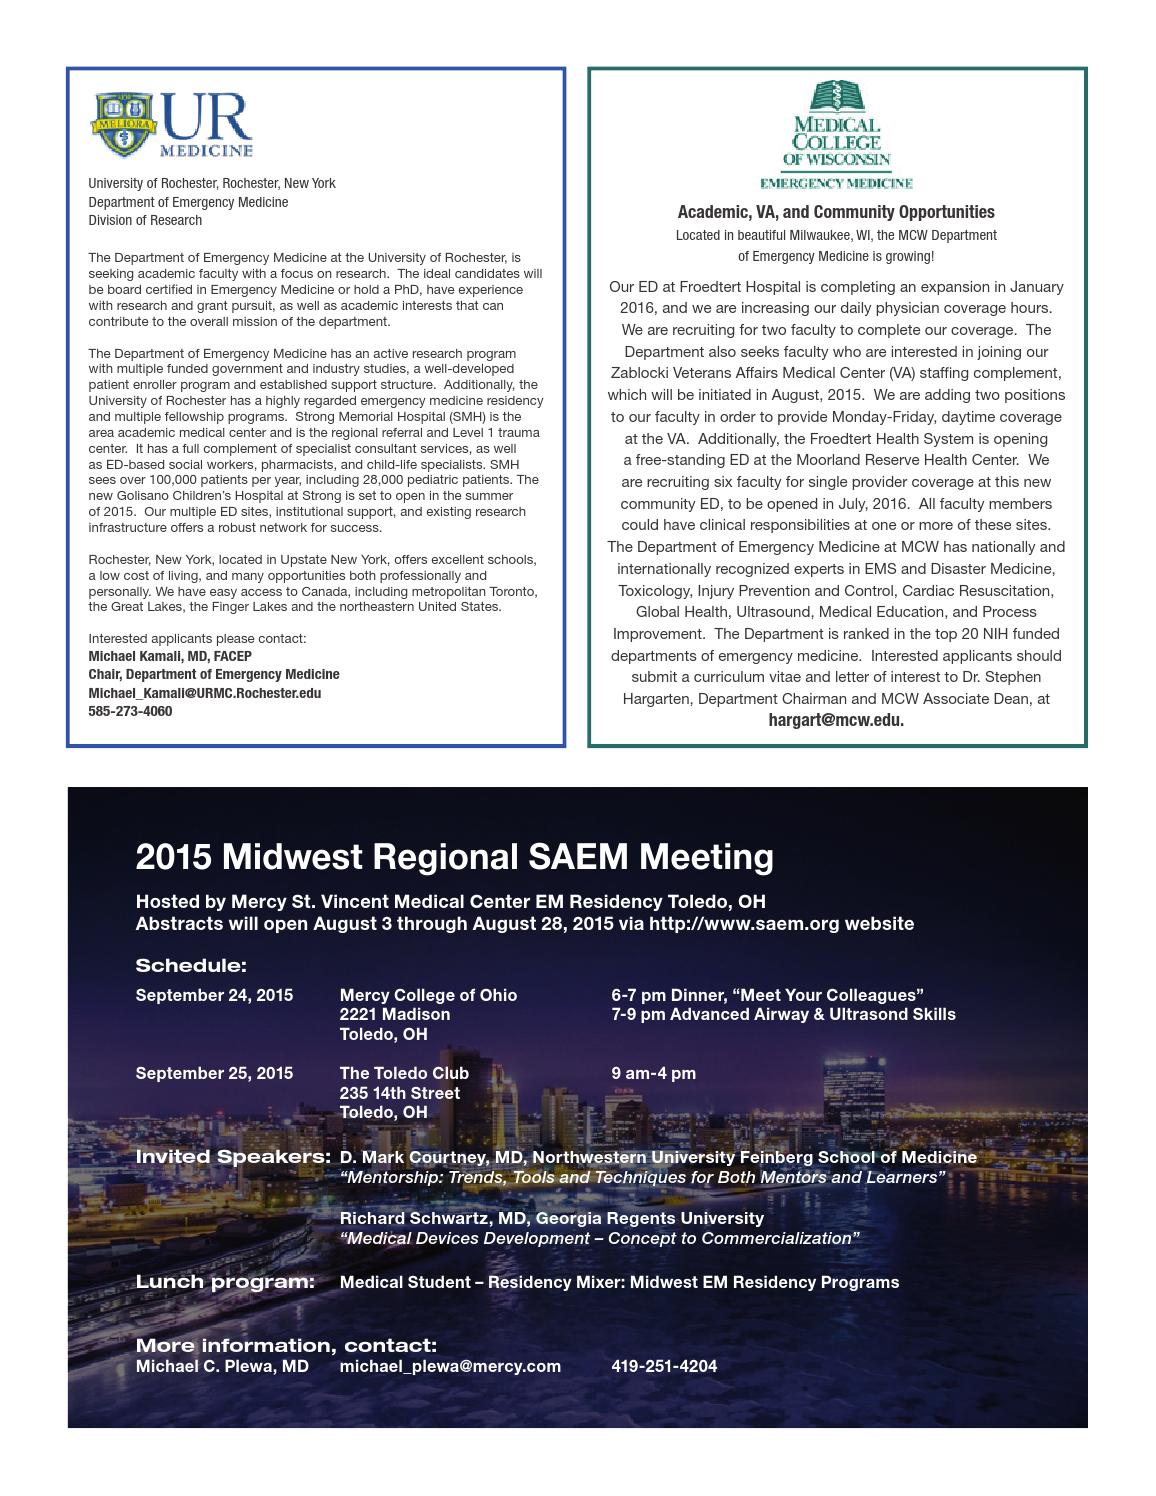 SAEM Newsletter July/August Issue by Society for Academic